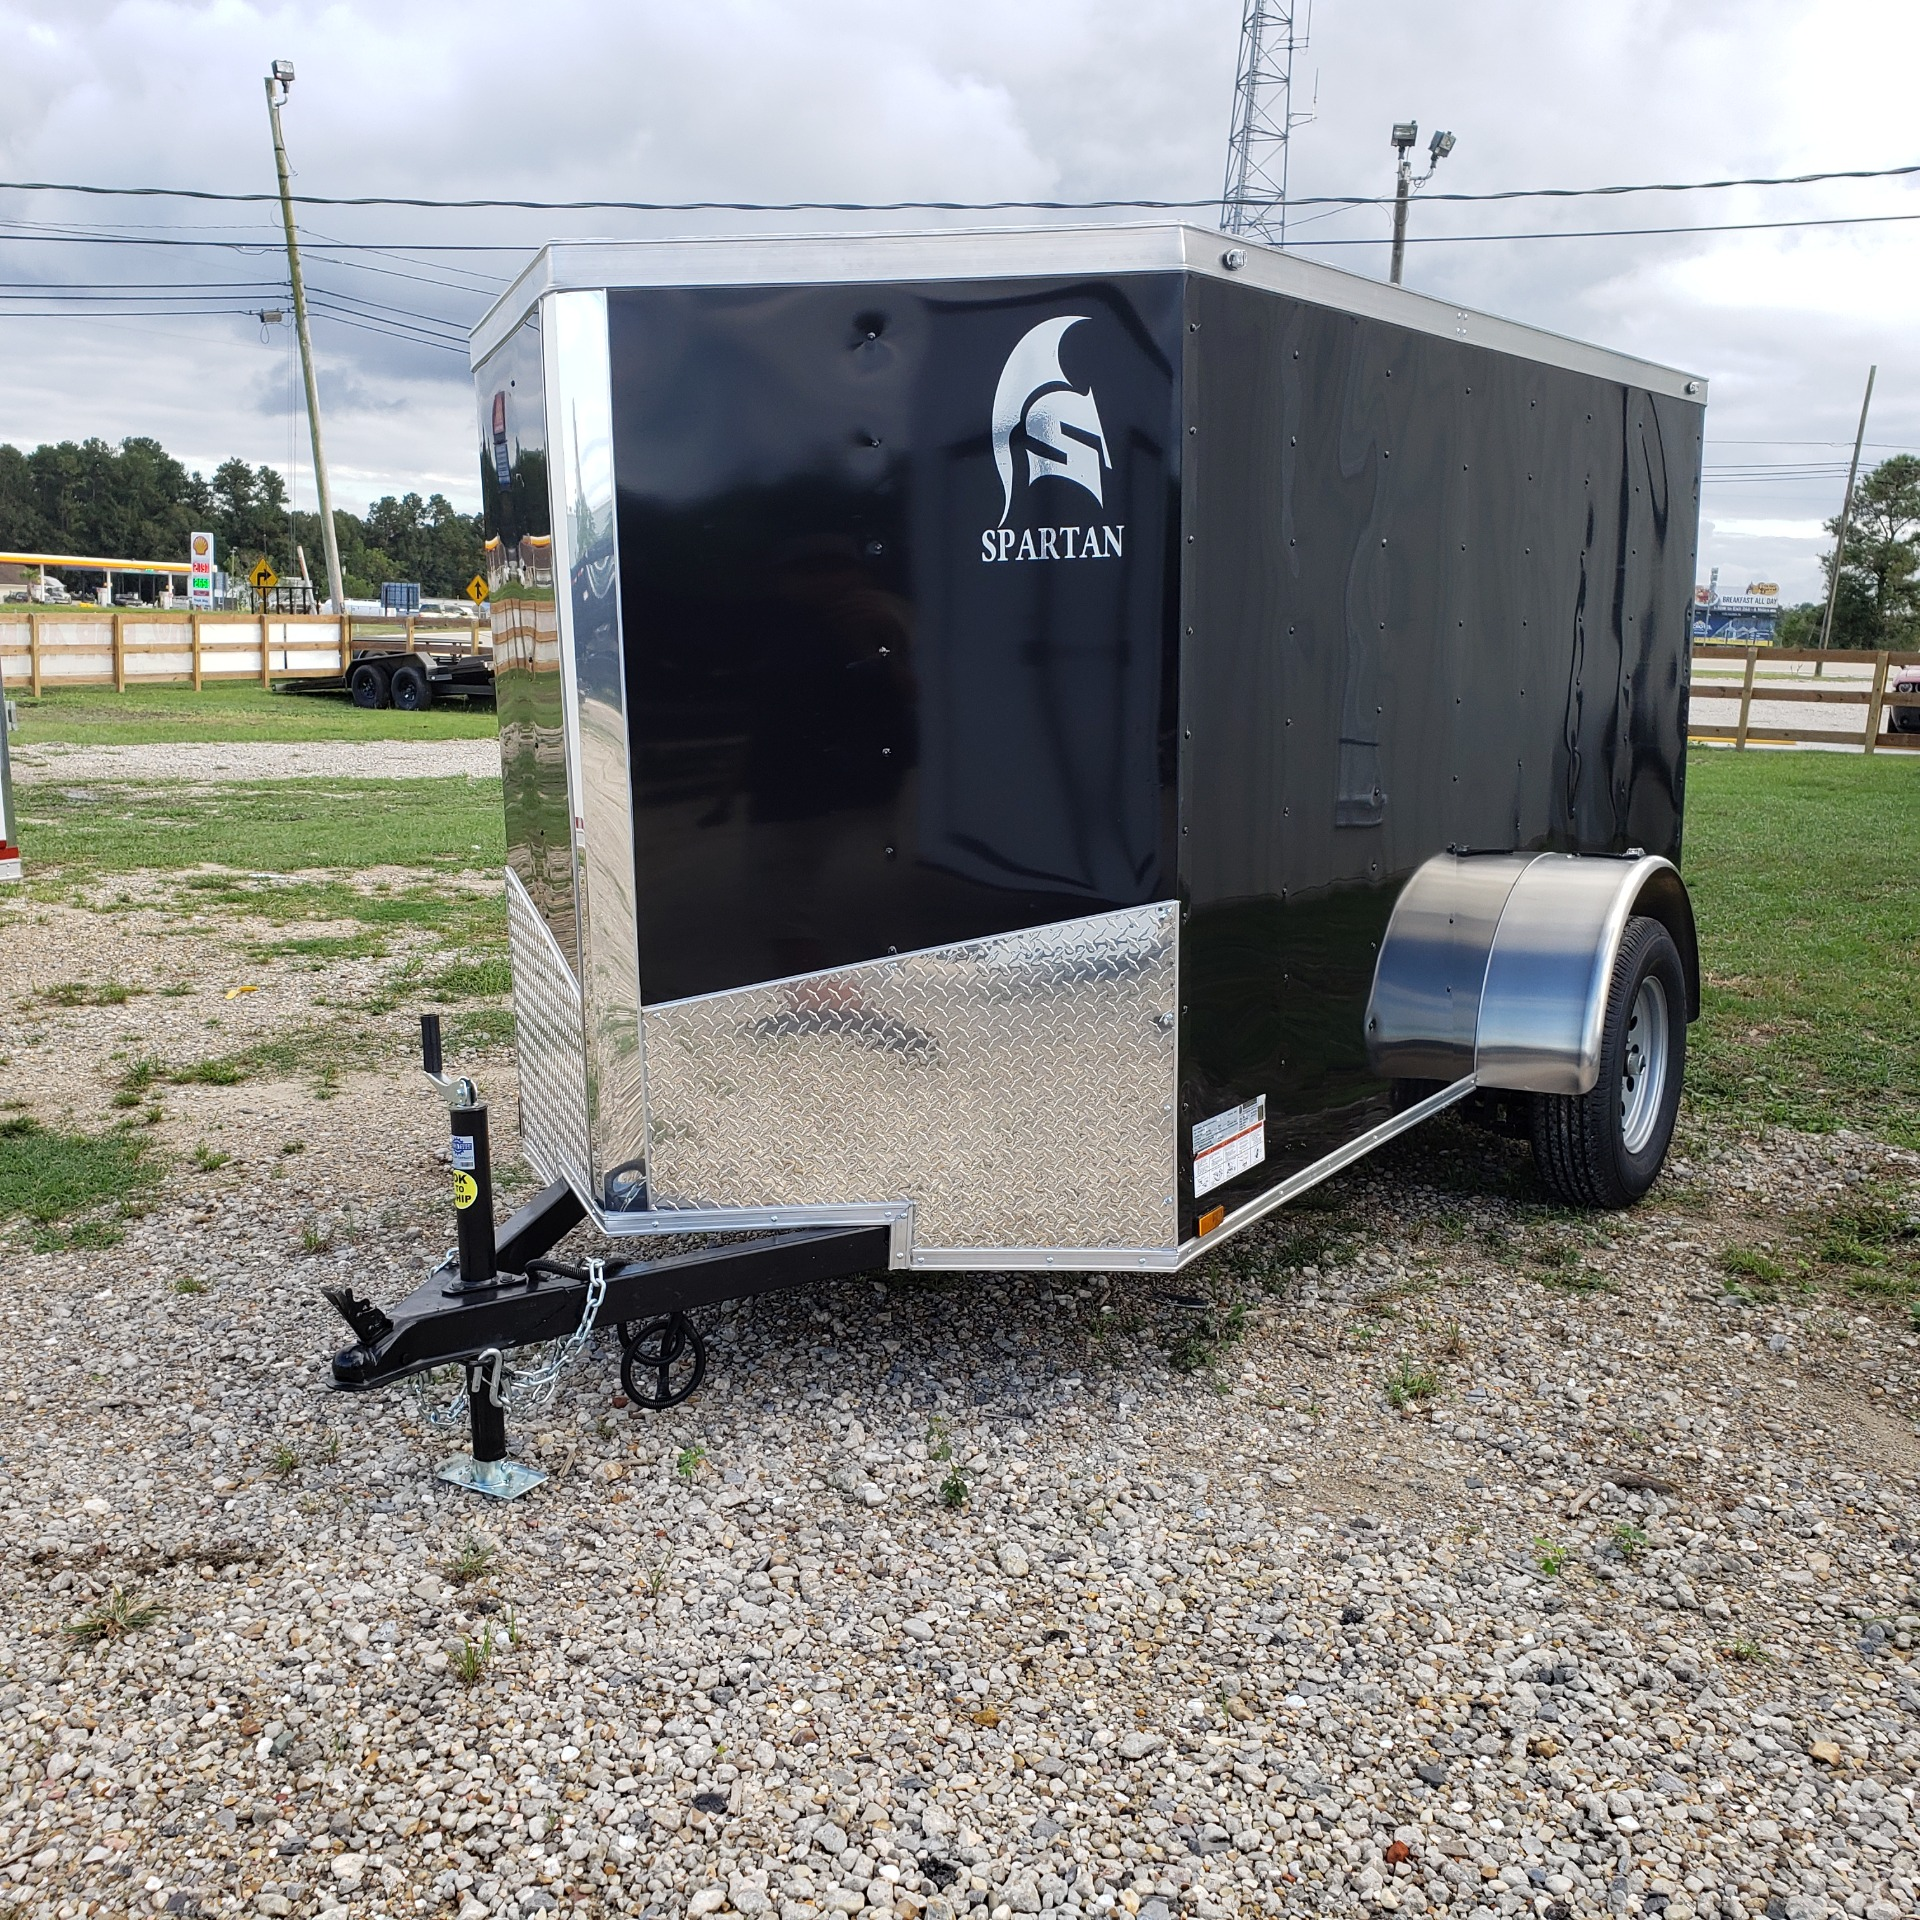 2020 Spartan Trailers 5 X 10 SPARTAN ENCLOSED TRAILER in Pearl River, Louisiana - Photo 1